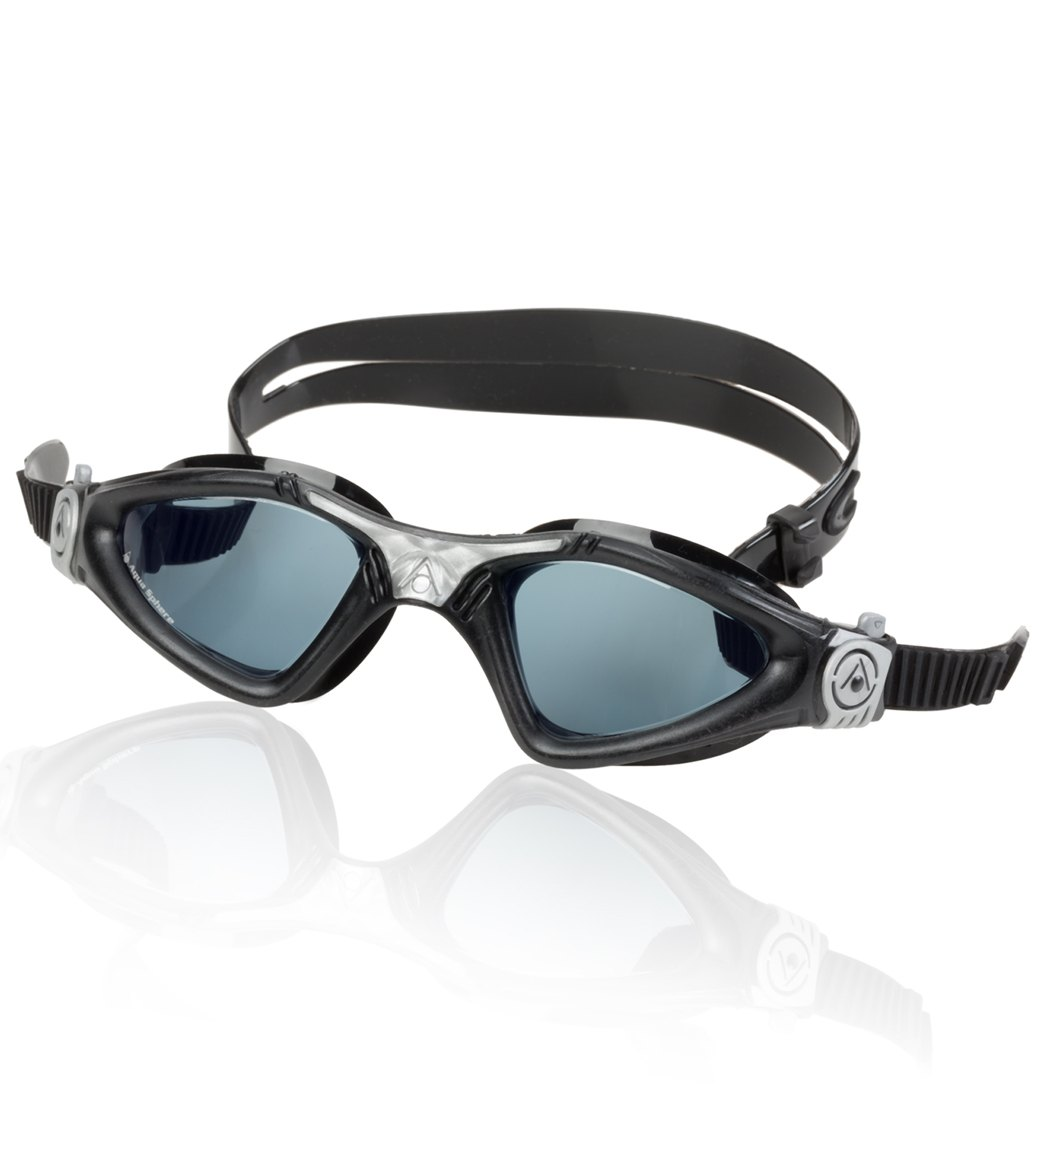 AquaSphere Kayenne Anti Fog Swimming Goggles